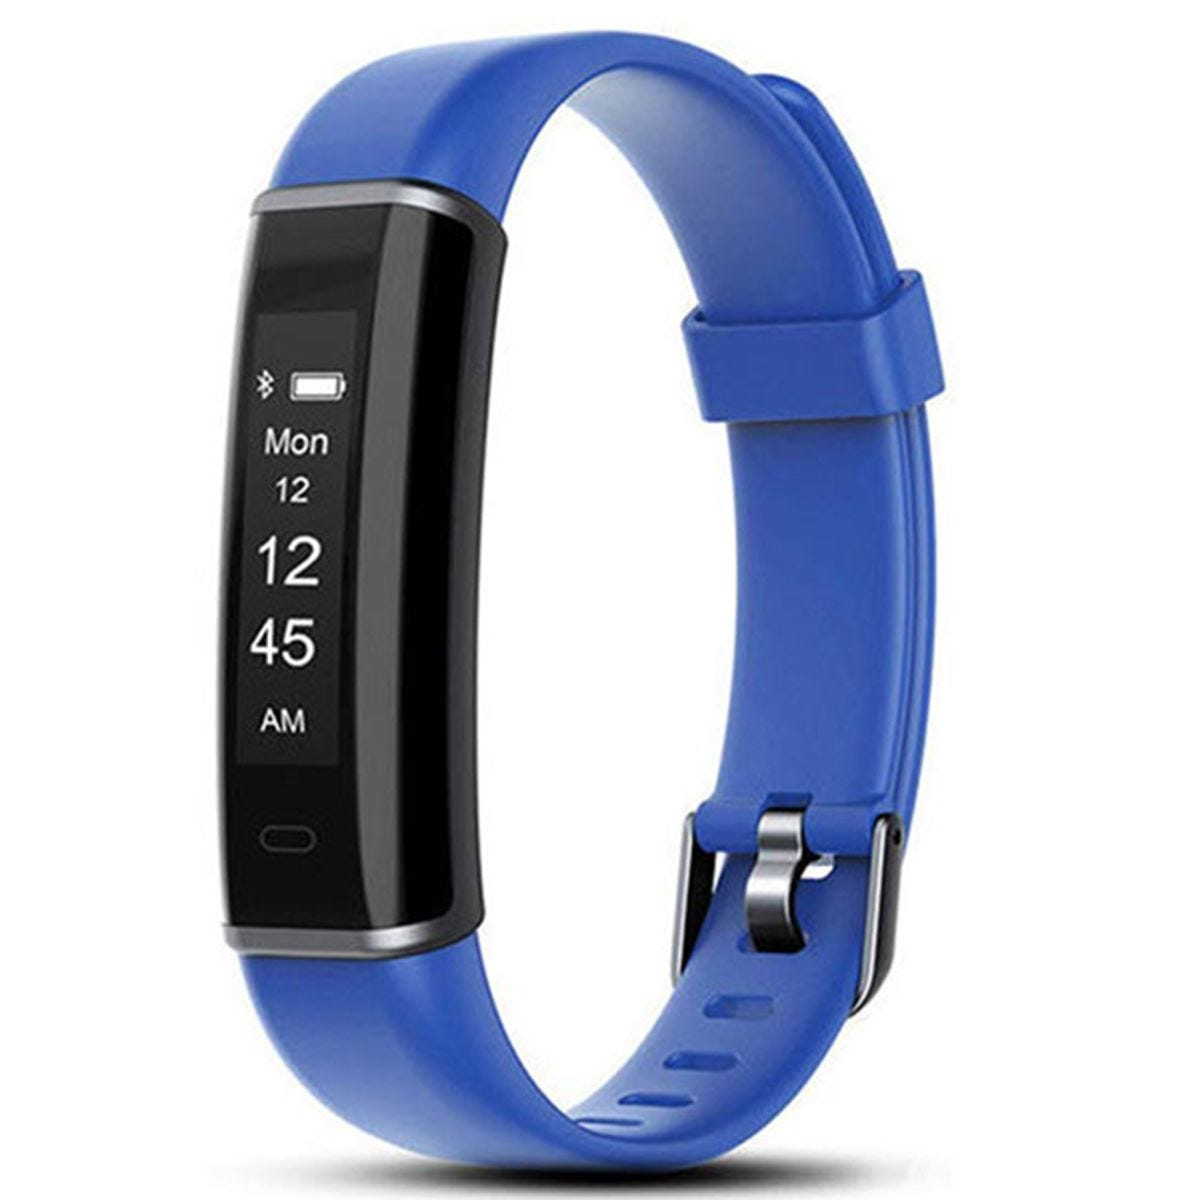 Aquarius AQ113HR Fitness Tracker With Heart Rate Monitor - Blue